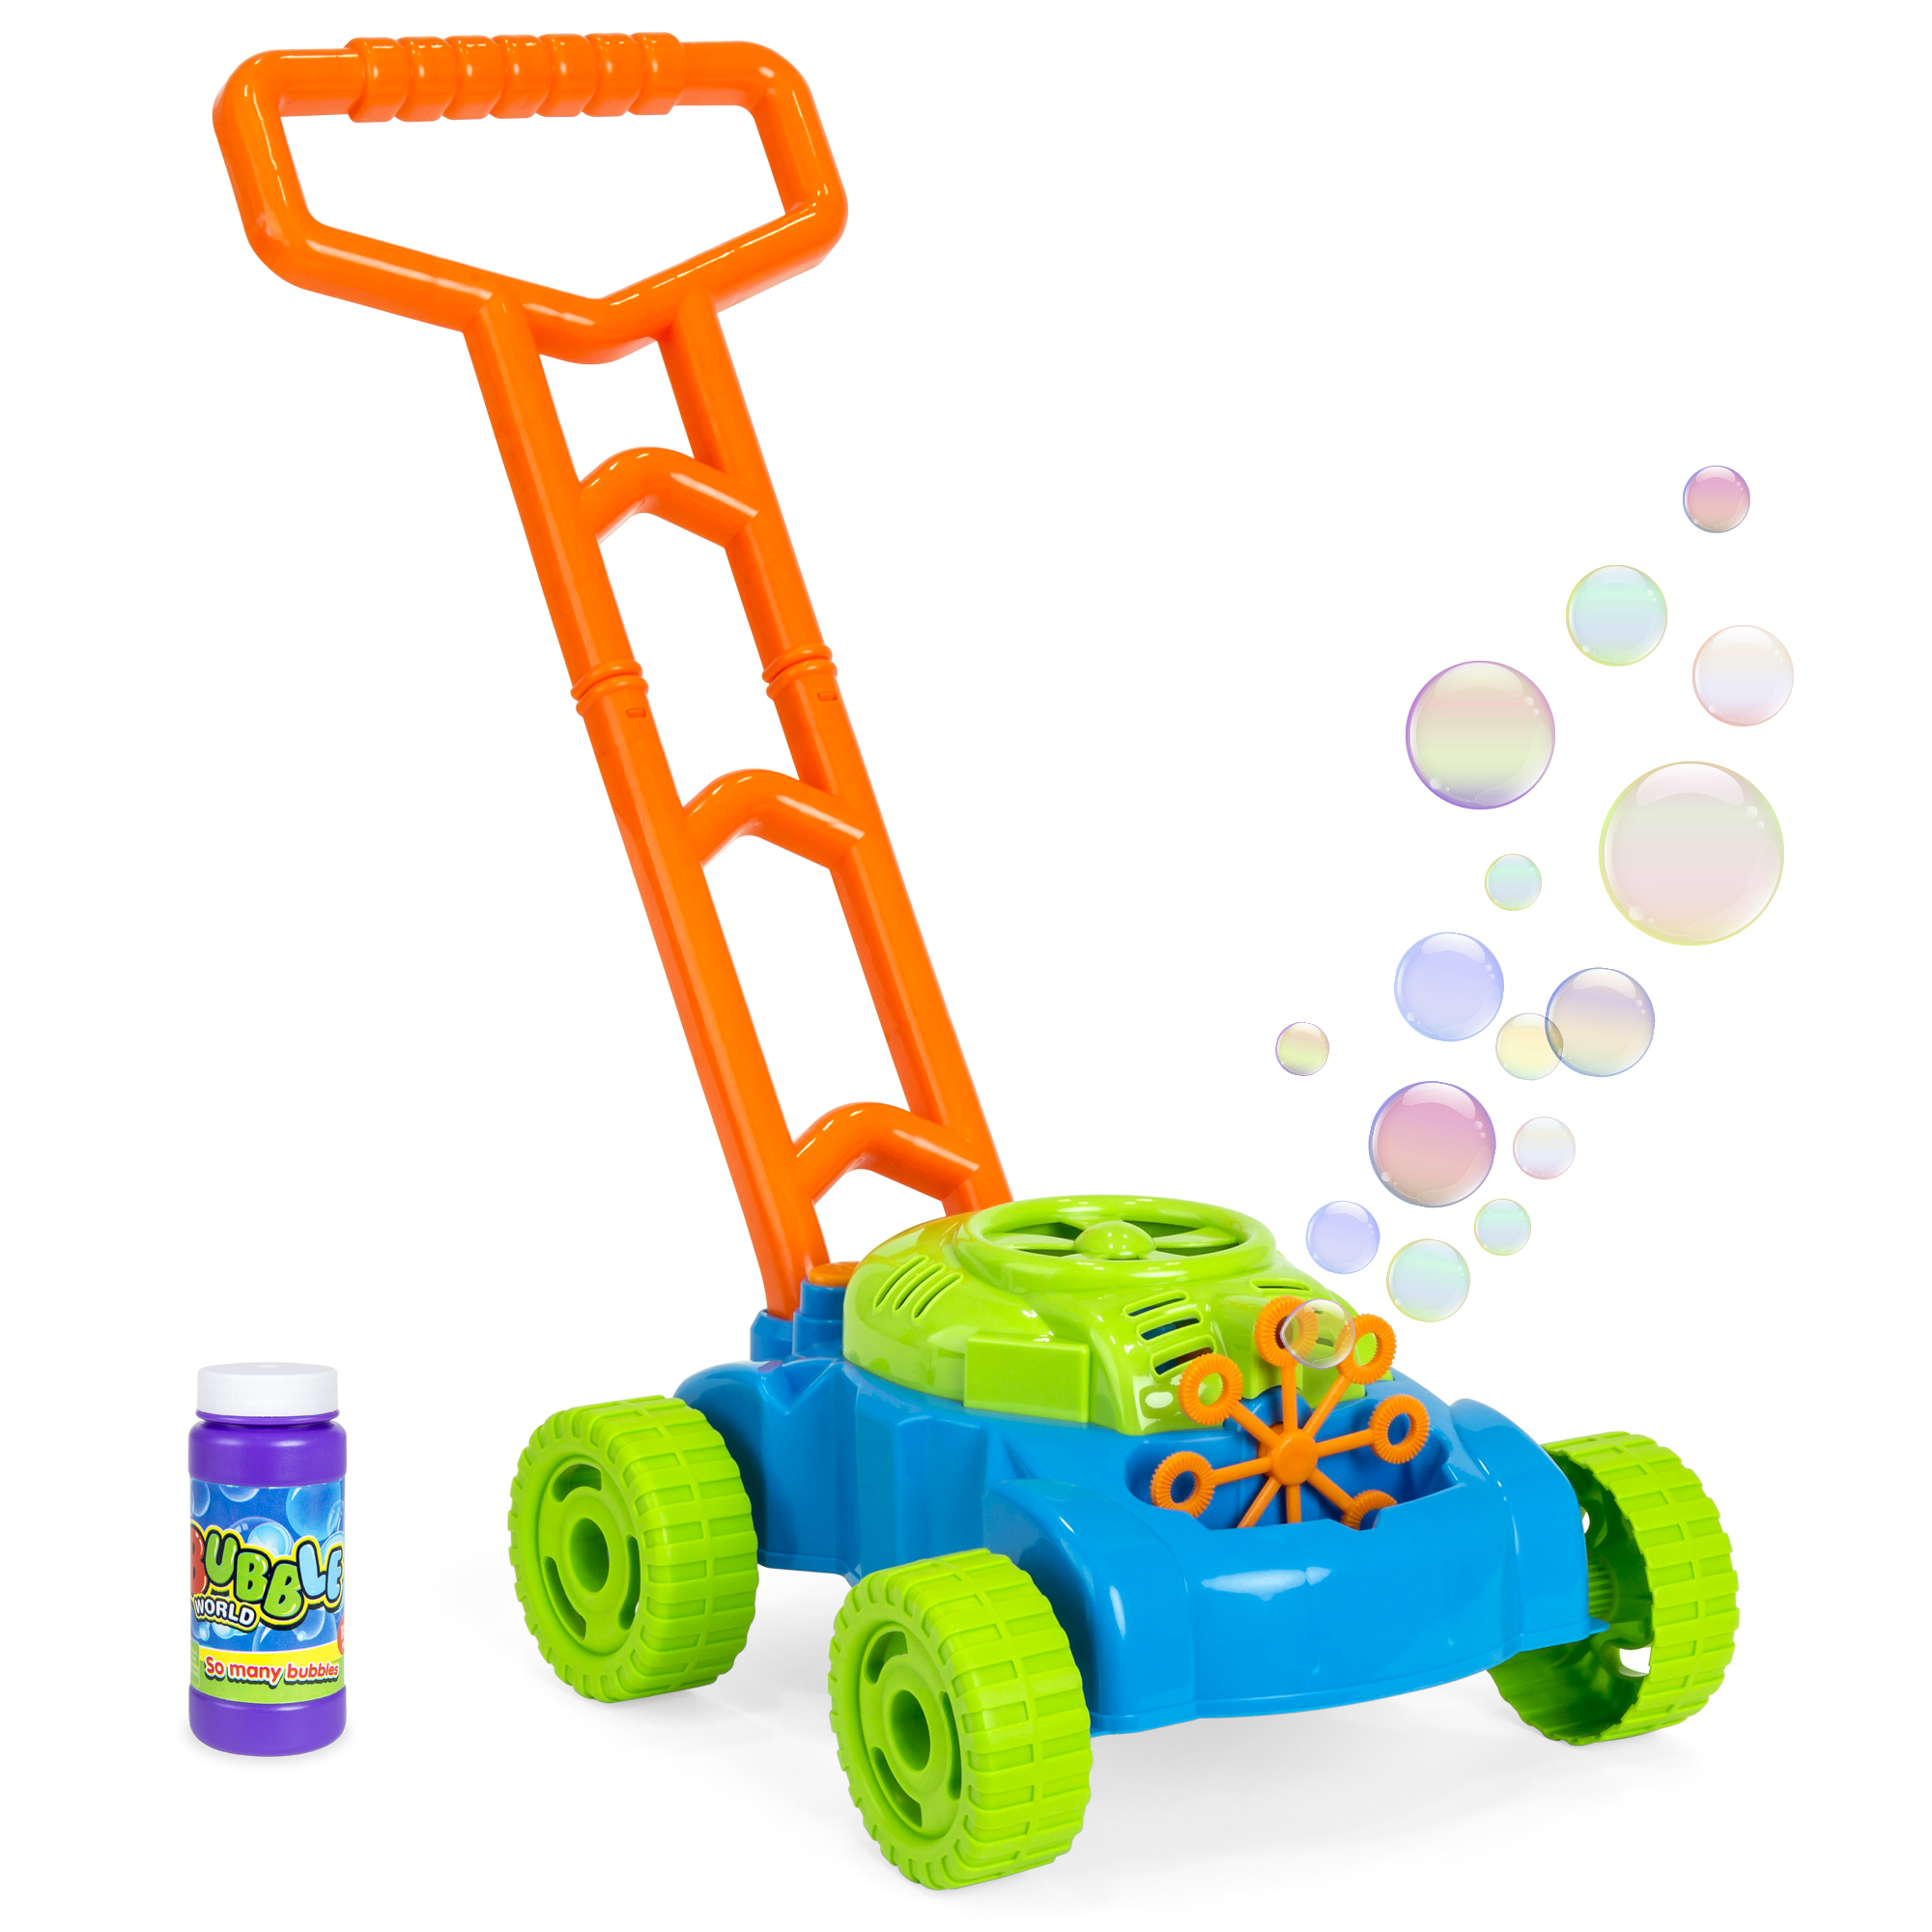 Double Bubble Mower Electronic Bubbles Maker Machine Garden Lawnmower Grass Toy